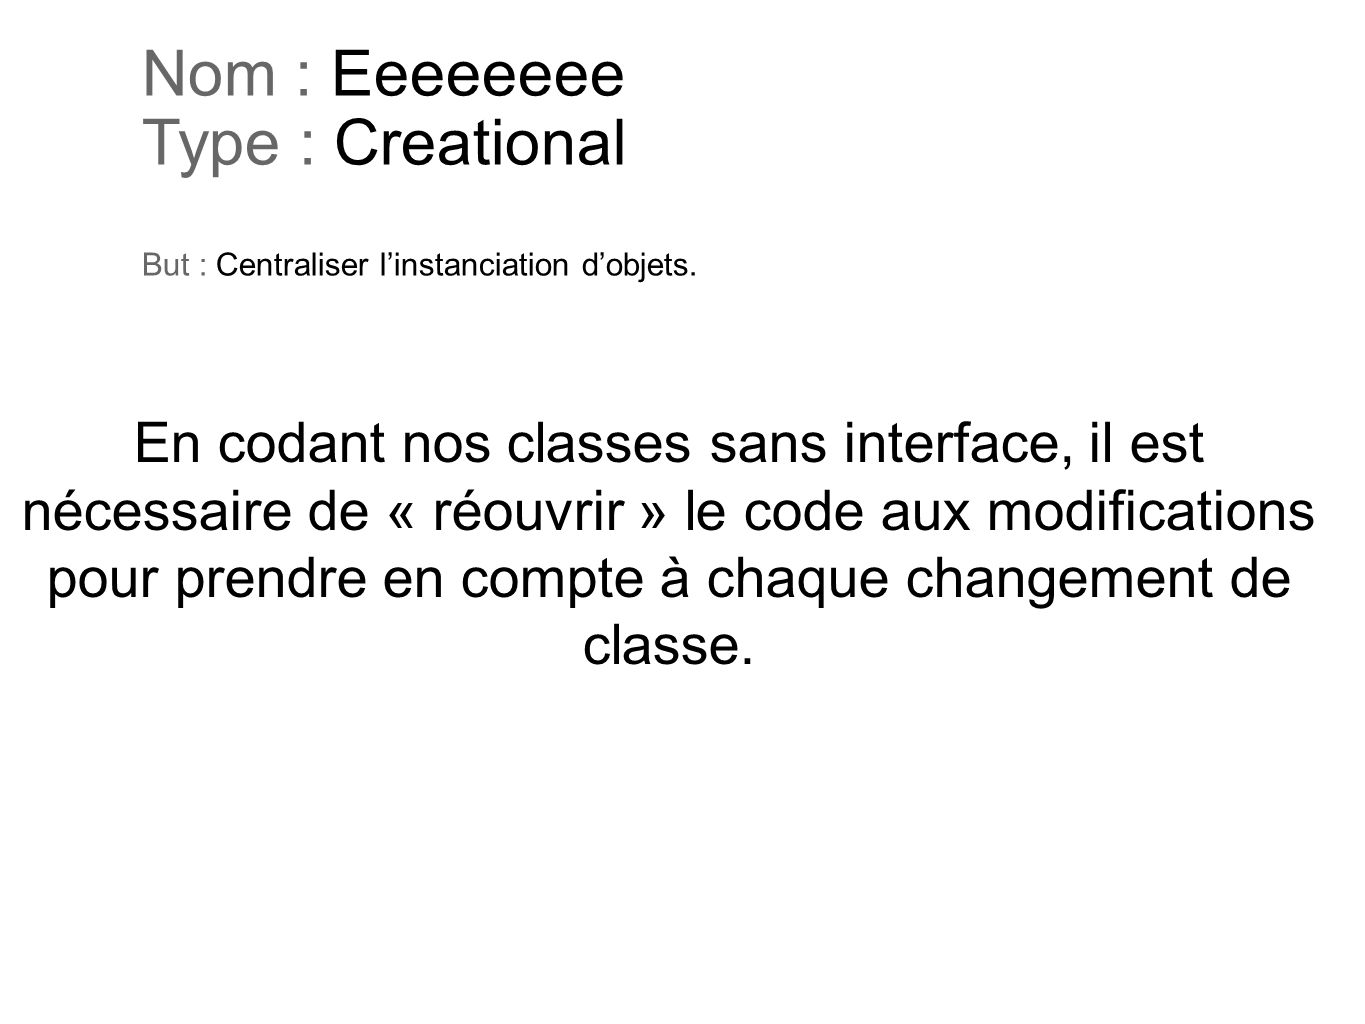 Nom : Eeeeeeee Type : Creational But : Centraliser linstanciation dobjets. En codant nos classes sans interface, il est nécessaire de « réouvrir » le